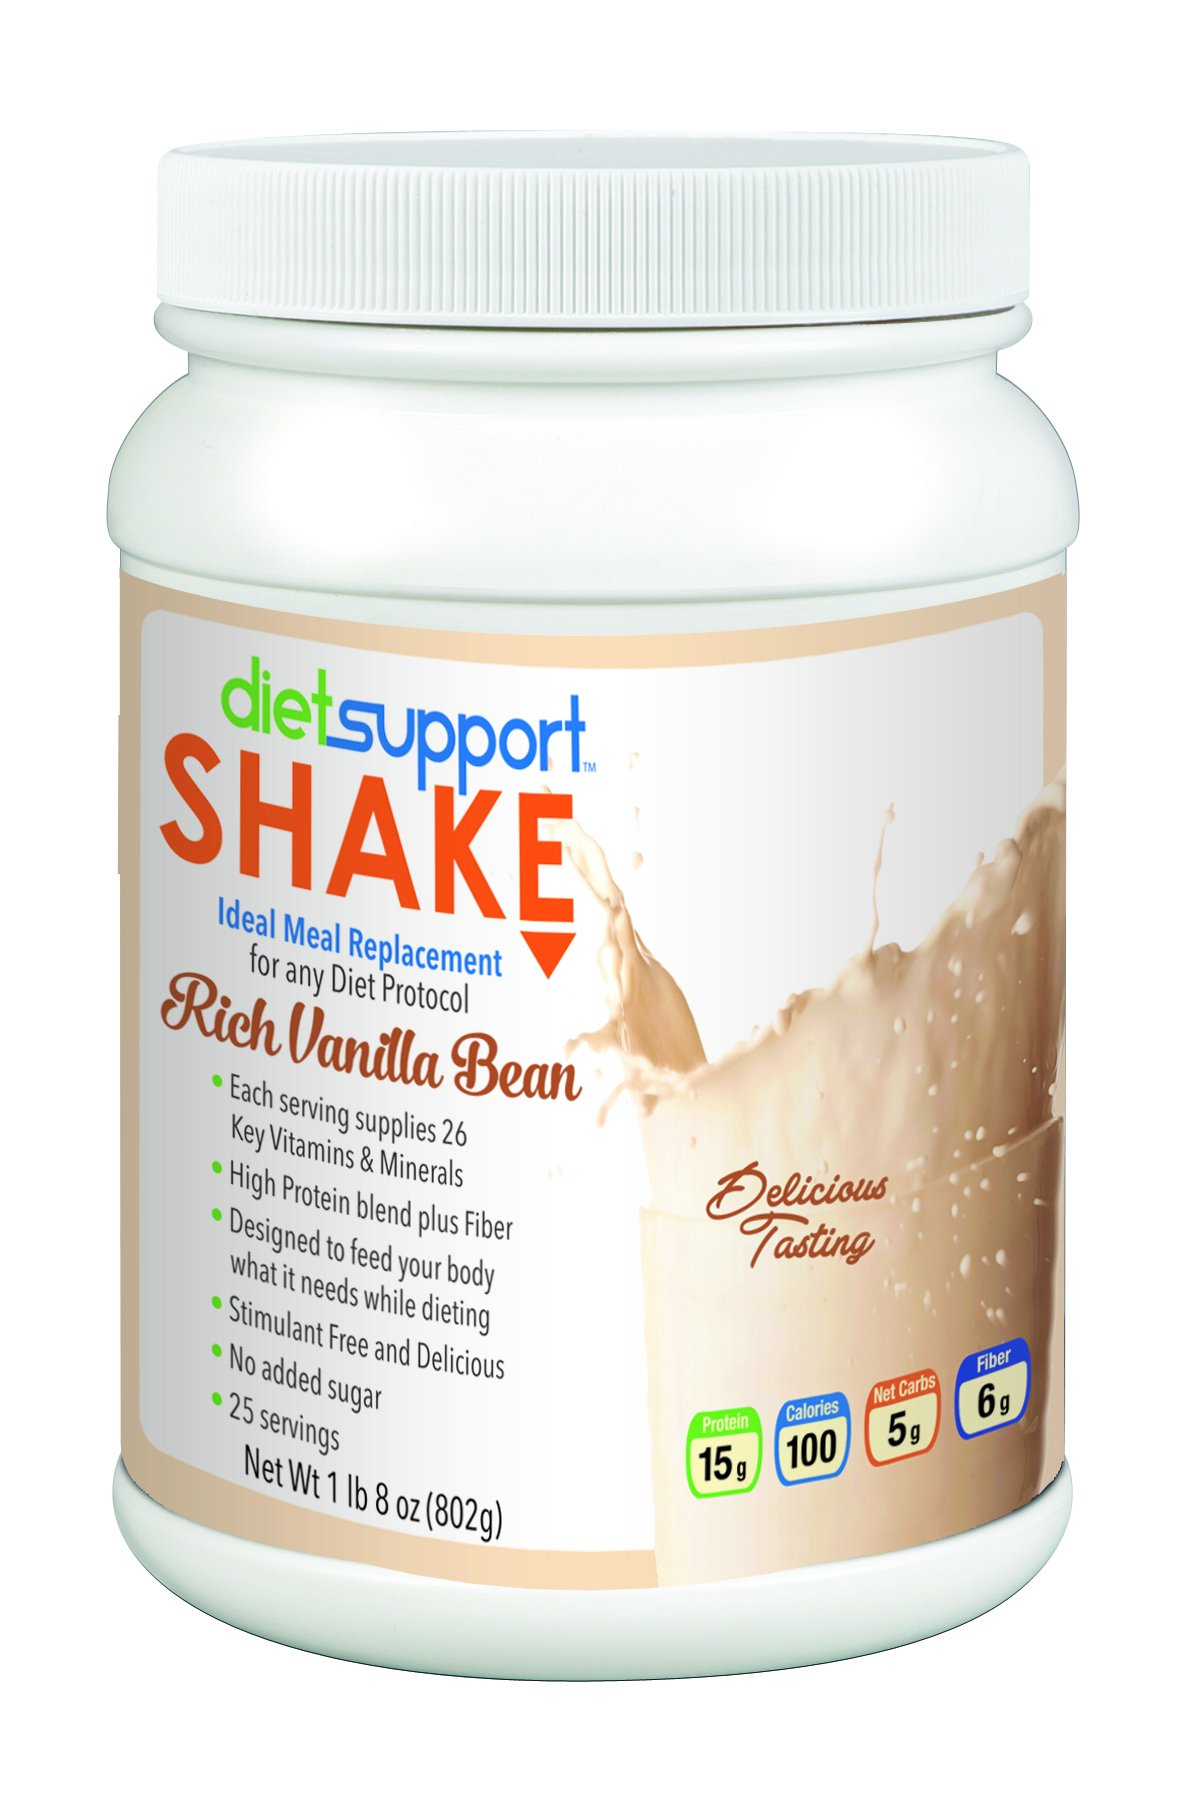 Diet SupportMeal Replacement Shake- Rich Vanilla Bean by NutraSmart